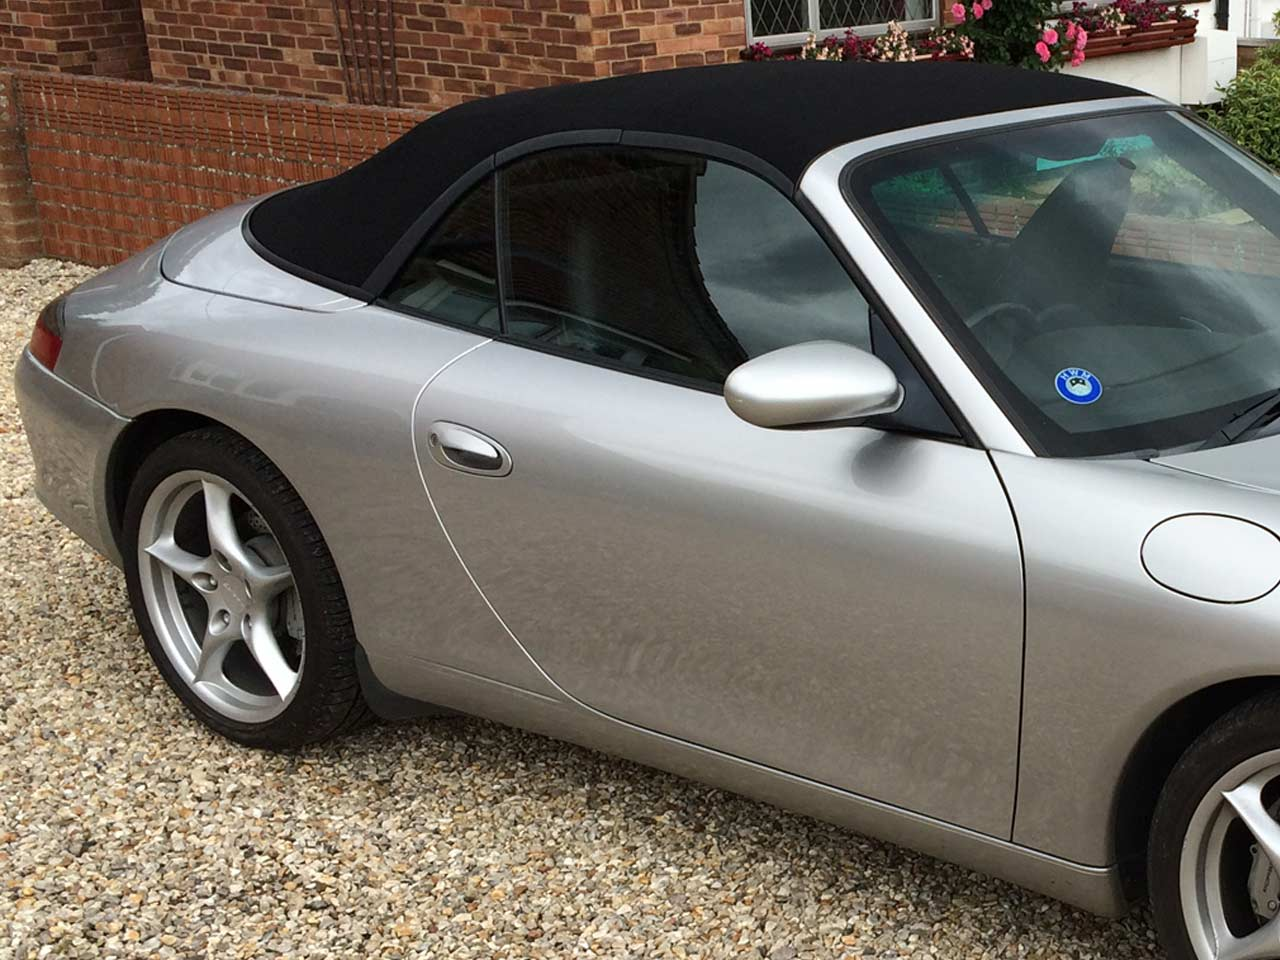 Convertible Hood Replacement Porsche Carrera 4